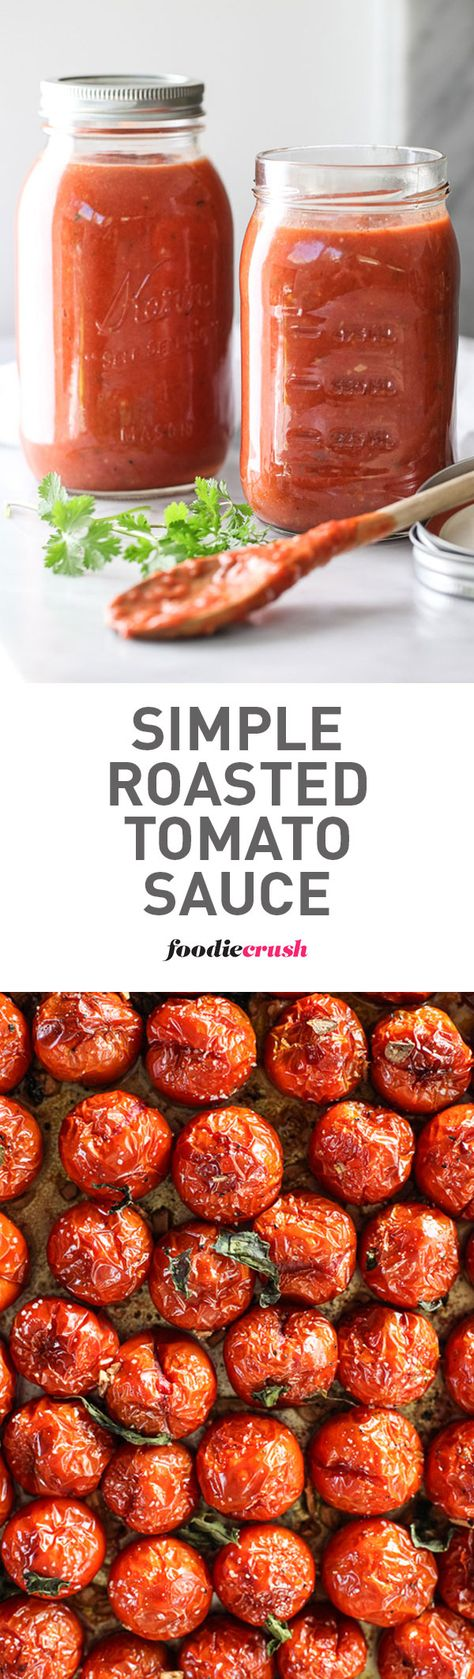 The secret to this favorite sauce #recipe starts with fresh tomatoes that are roasted in the oven to make them extra sweet all year round   foodiecrush.com